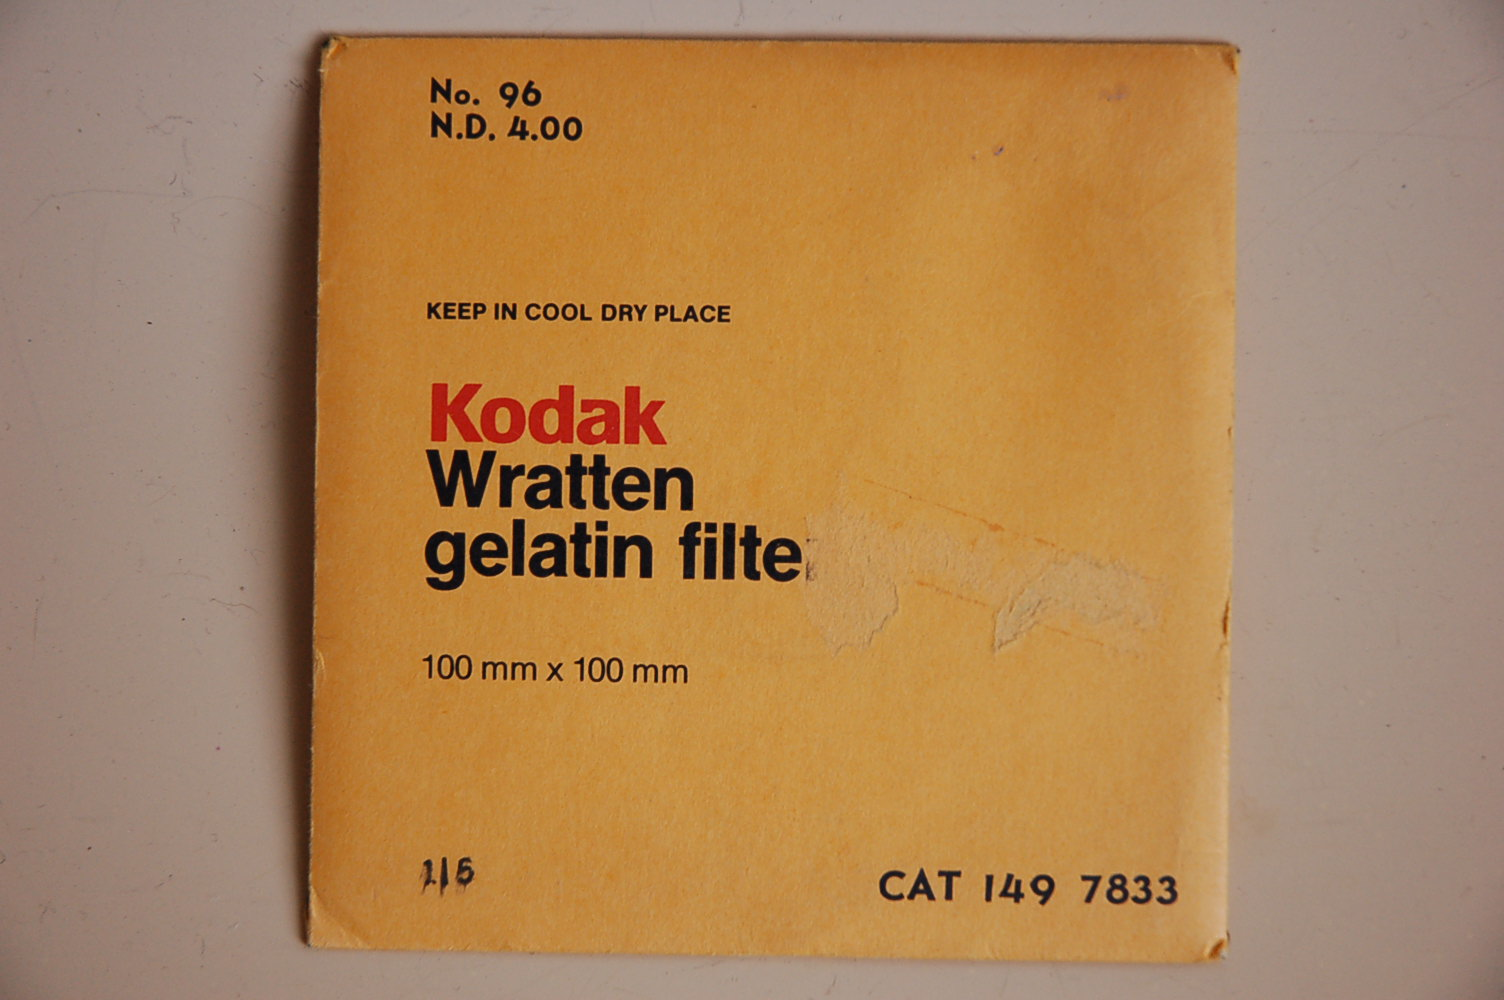 Kodak Filterfolie Nr.96 ND4.00 100x100mm 1497833